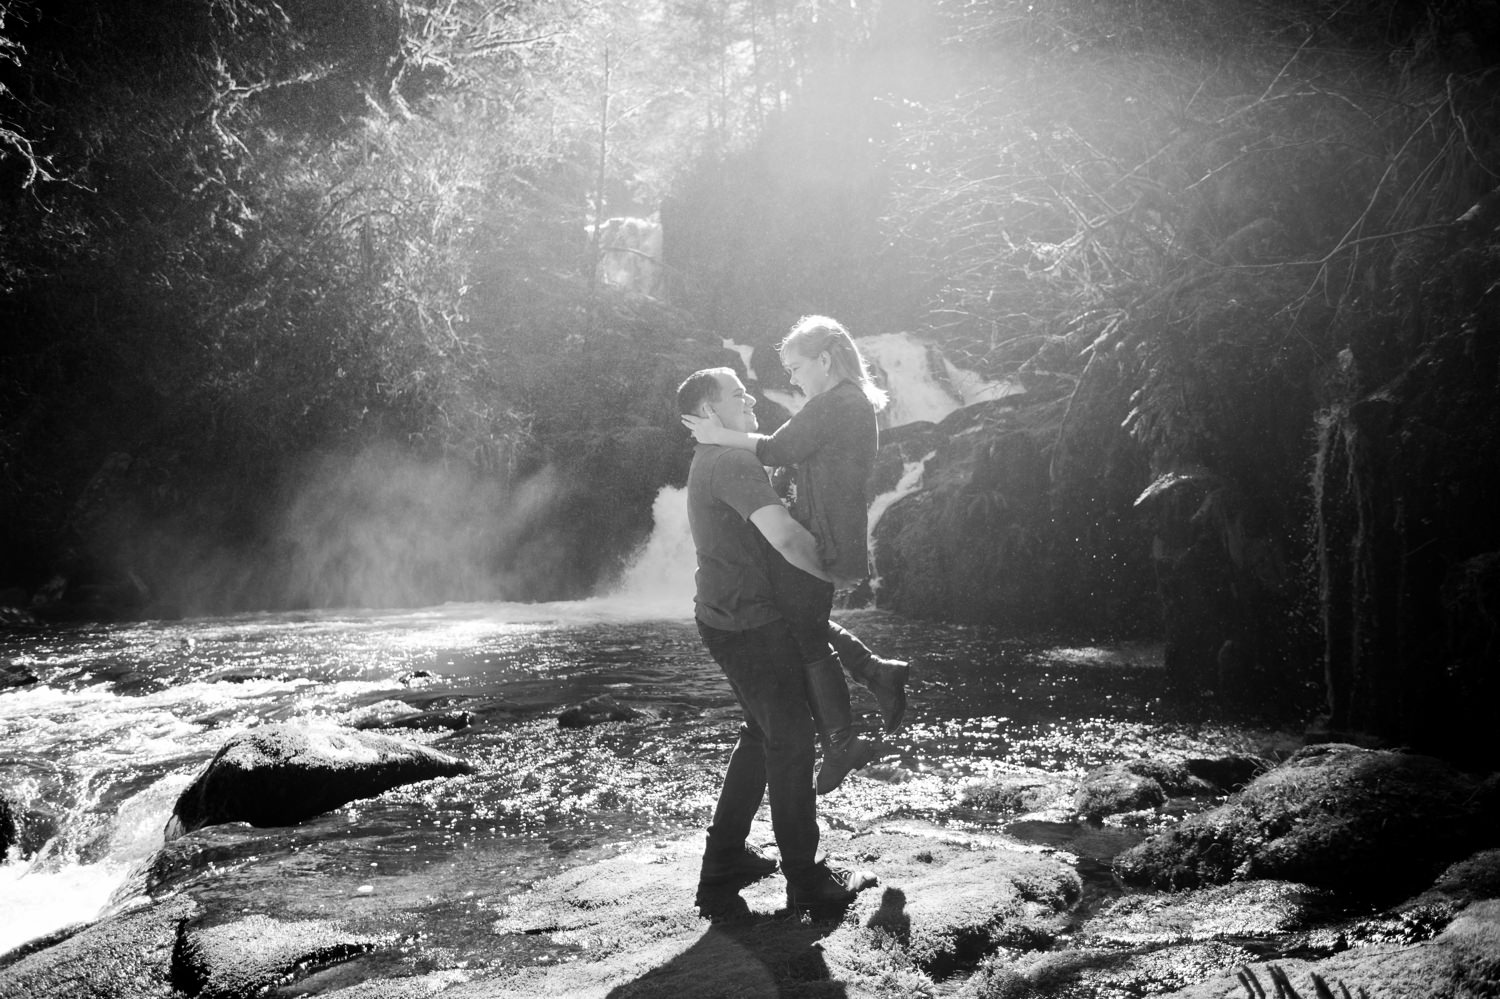 oregon-coast-engagement-pictures-018 Oregon Coast Engagement Pictures | North Fork Smith River Adventure Engagement | Sweet Creek Falls | Kaylee & Wyatt